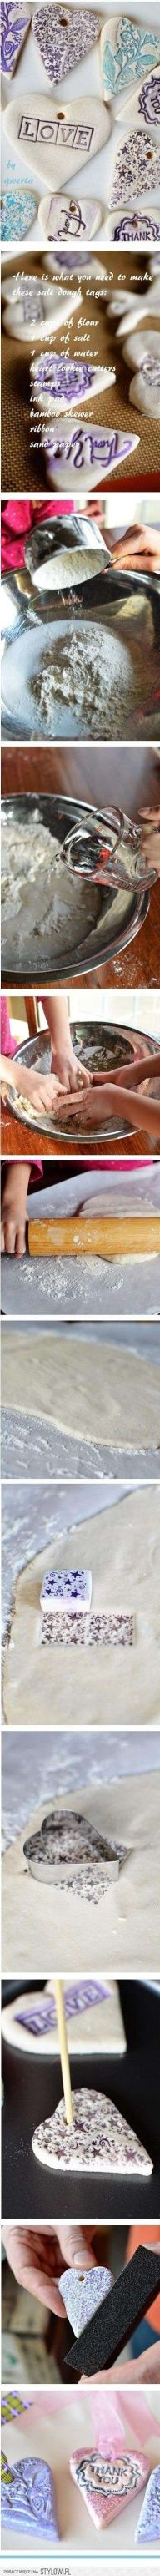 salt dough tags -  4 cups all-purpose flour 1 1/2 cups water 1 cup salt Preheat oven to 350 degrees F   Mix the flour, salt and water. Knead dough until smooth. Roll out dough and cut into desired shapes. Bake for 1 hour. Once cool paint with colors, if desired.